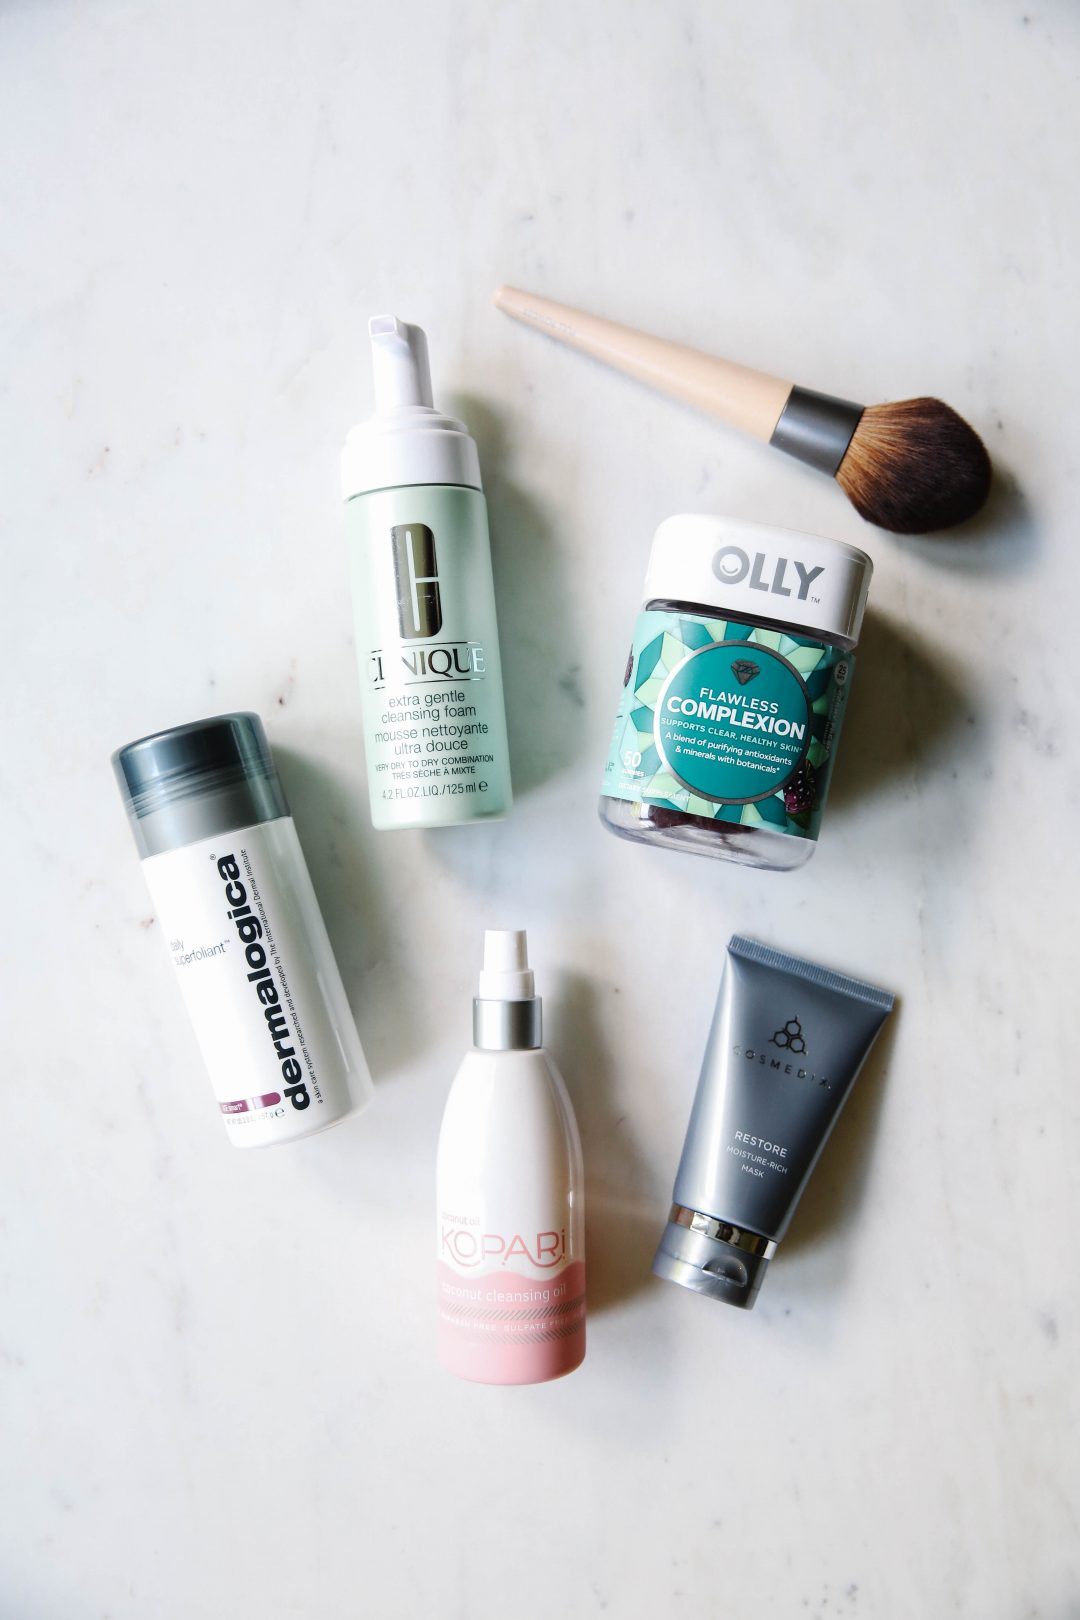 5 Ways to Take Better Care of Your Skin with OLLY Nutrition's new Flawless Complexion vitamins.